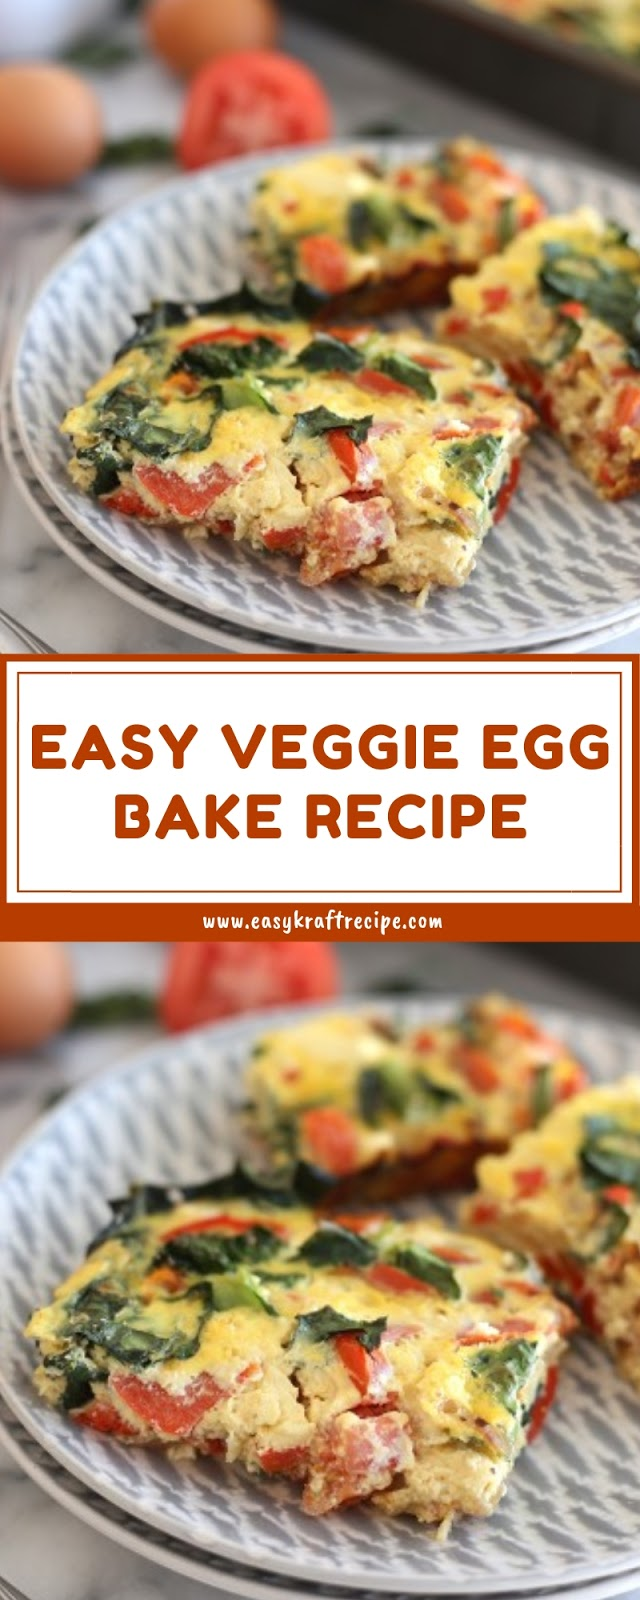 EASY VEGGIE EGG BAKE RECIPE